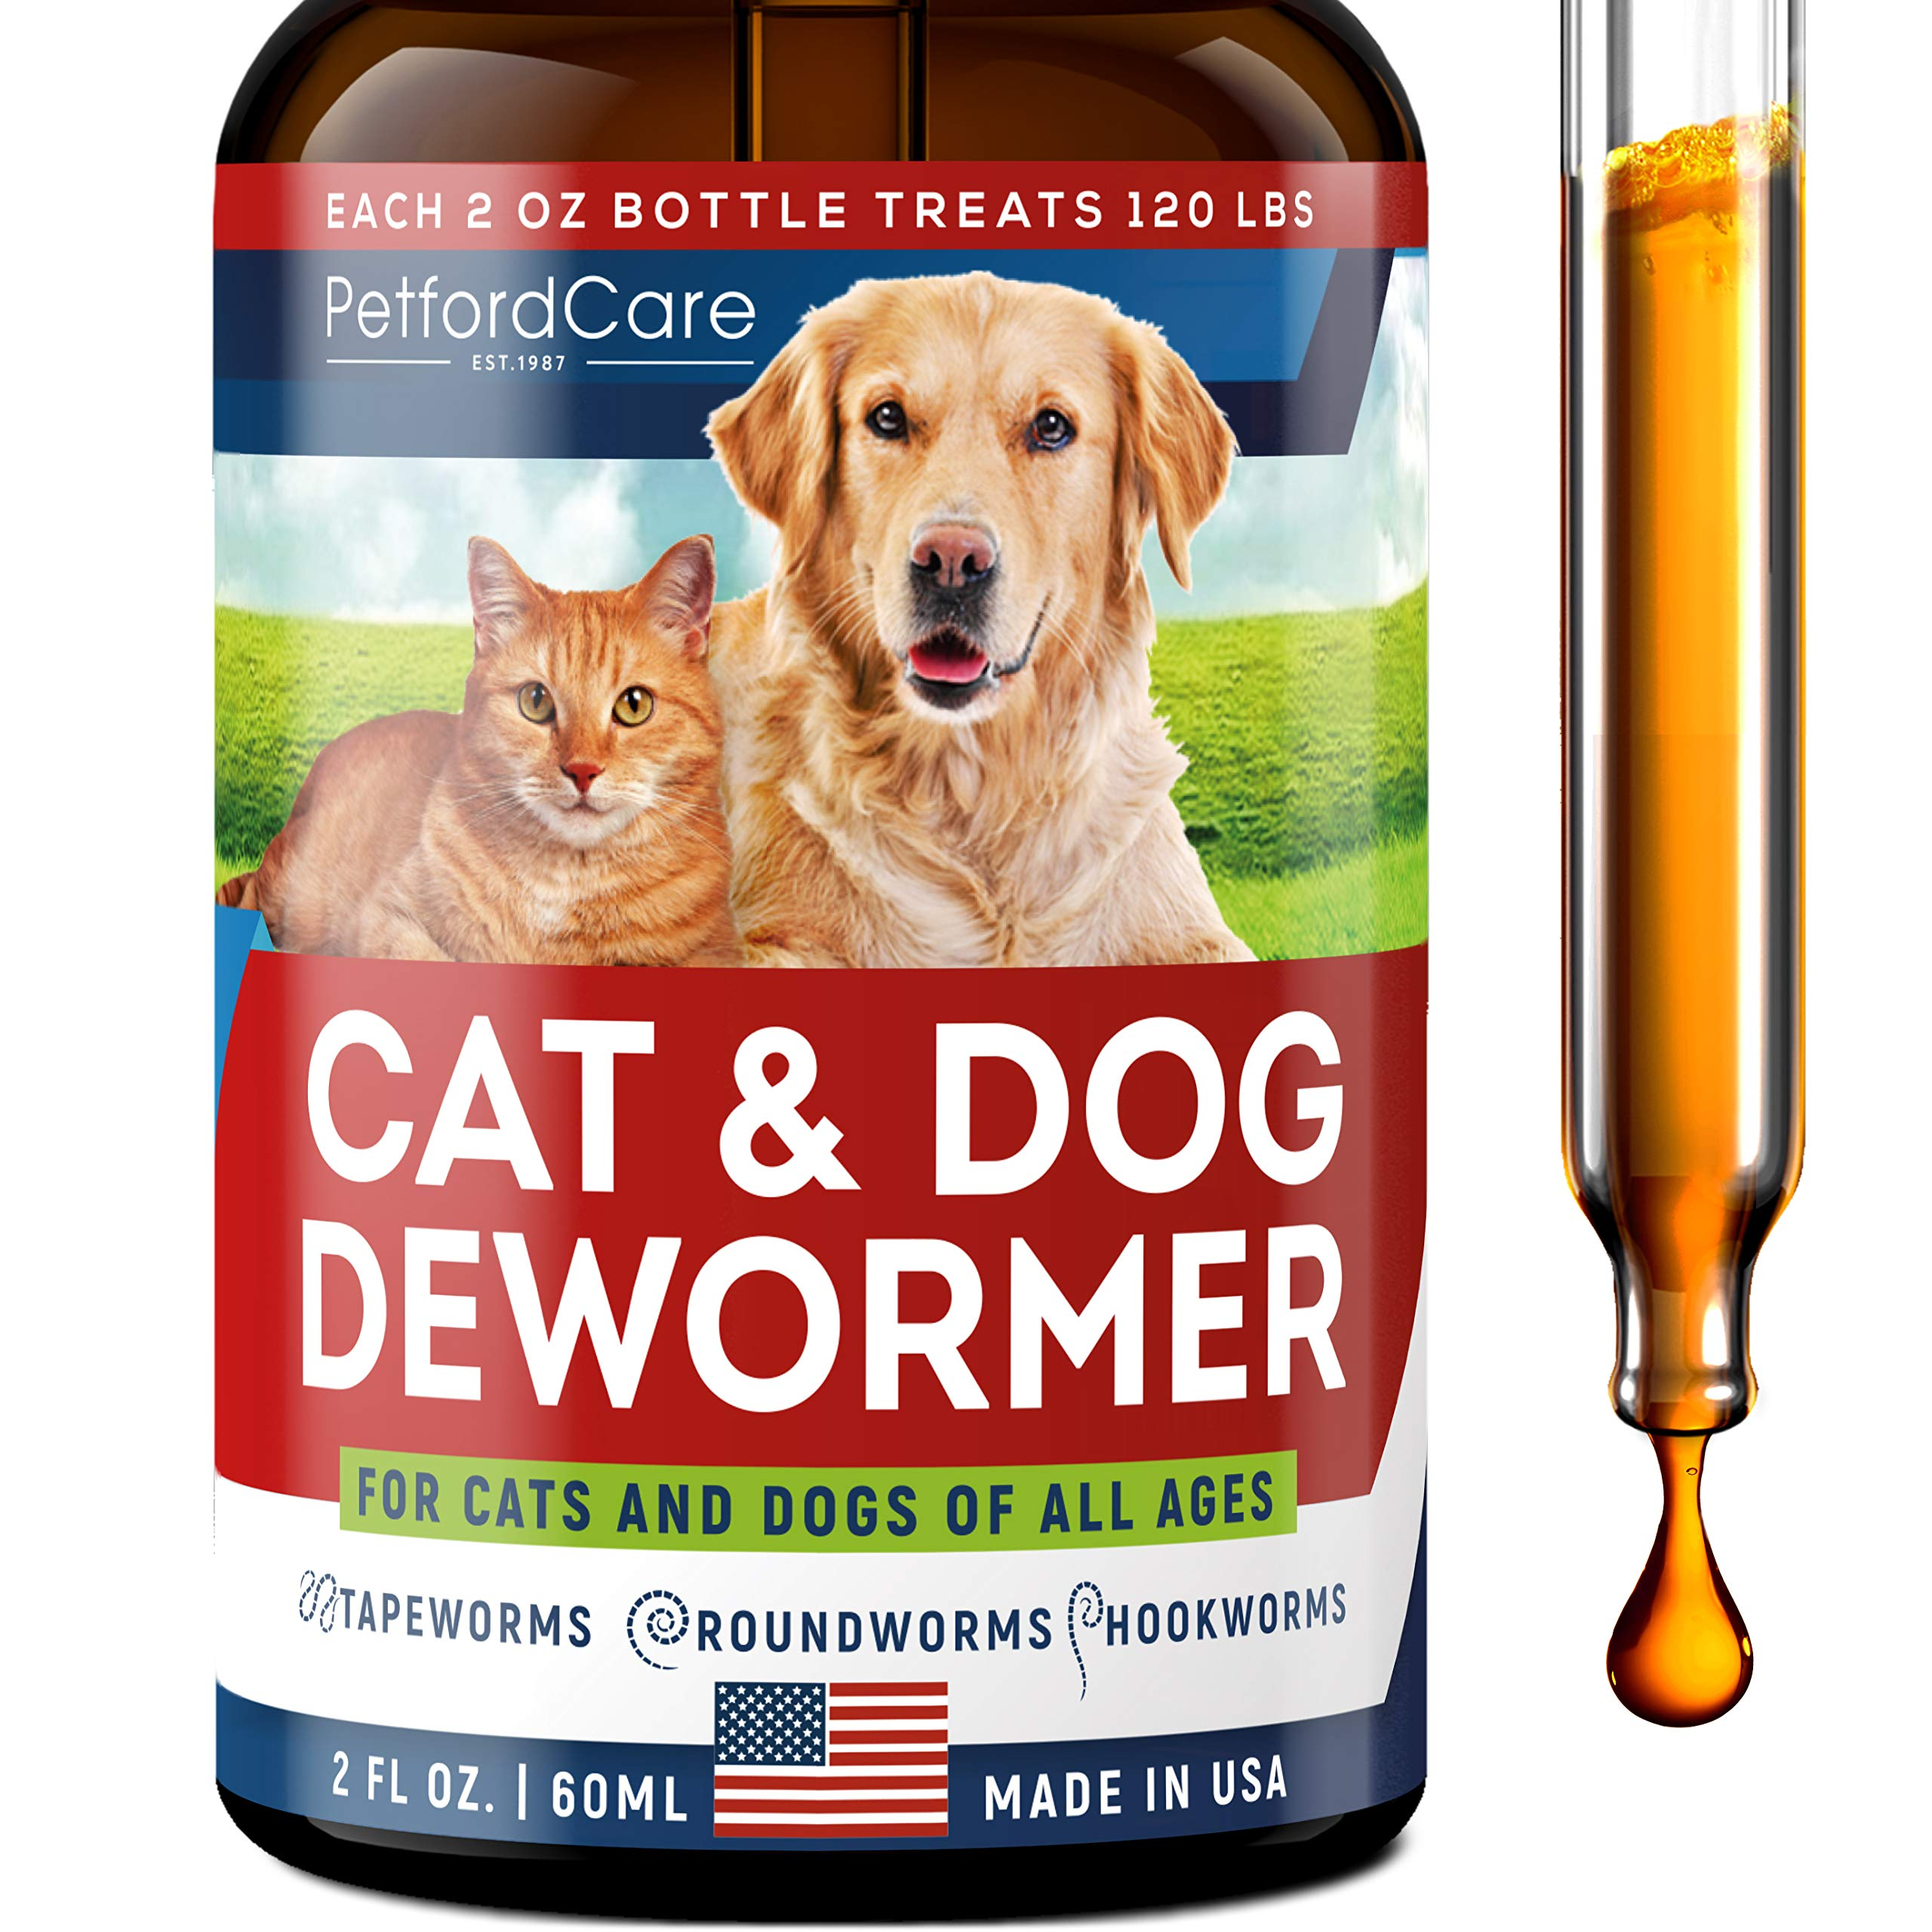 Dewоrmer for Dogs & Cats - Made in USA - Dewоrmer for Puppies, Kittens, Small & Large Breeds - Powerful Canine Dewоrmer for Hookwоrm, Roundwоrm, Tapewоrm - Liquid Cat Wоrmer with MAX Absorption by Petford est. 1987